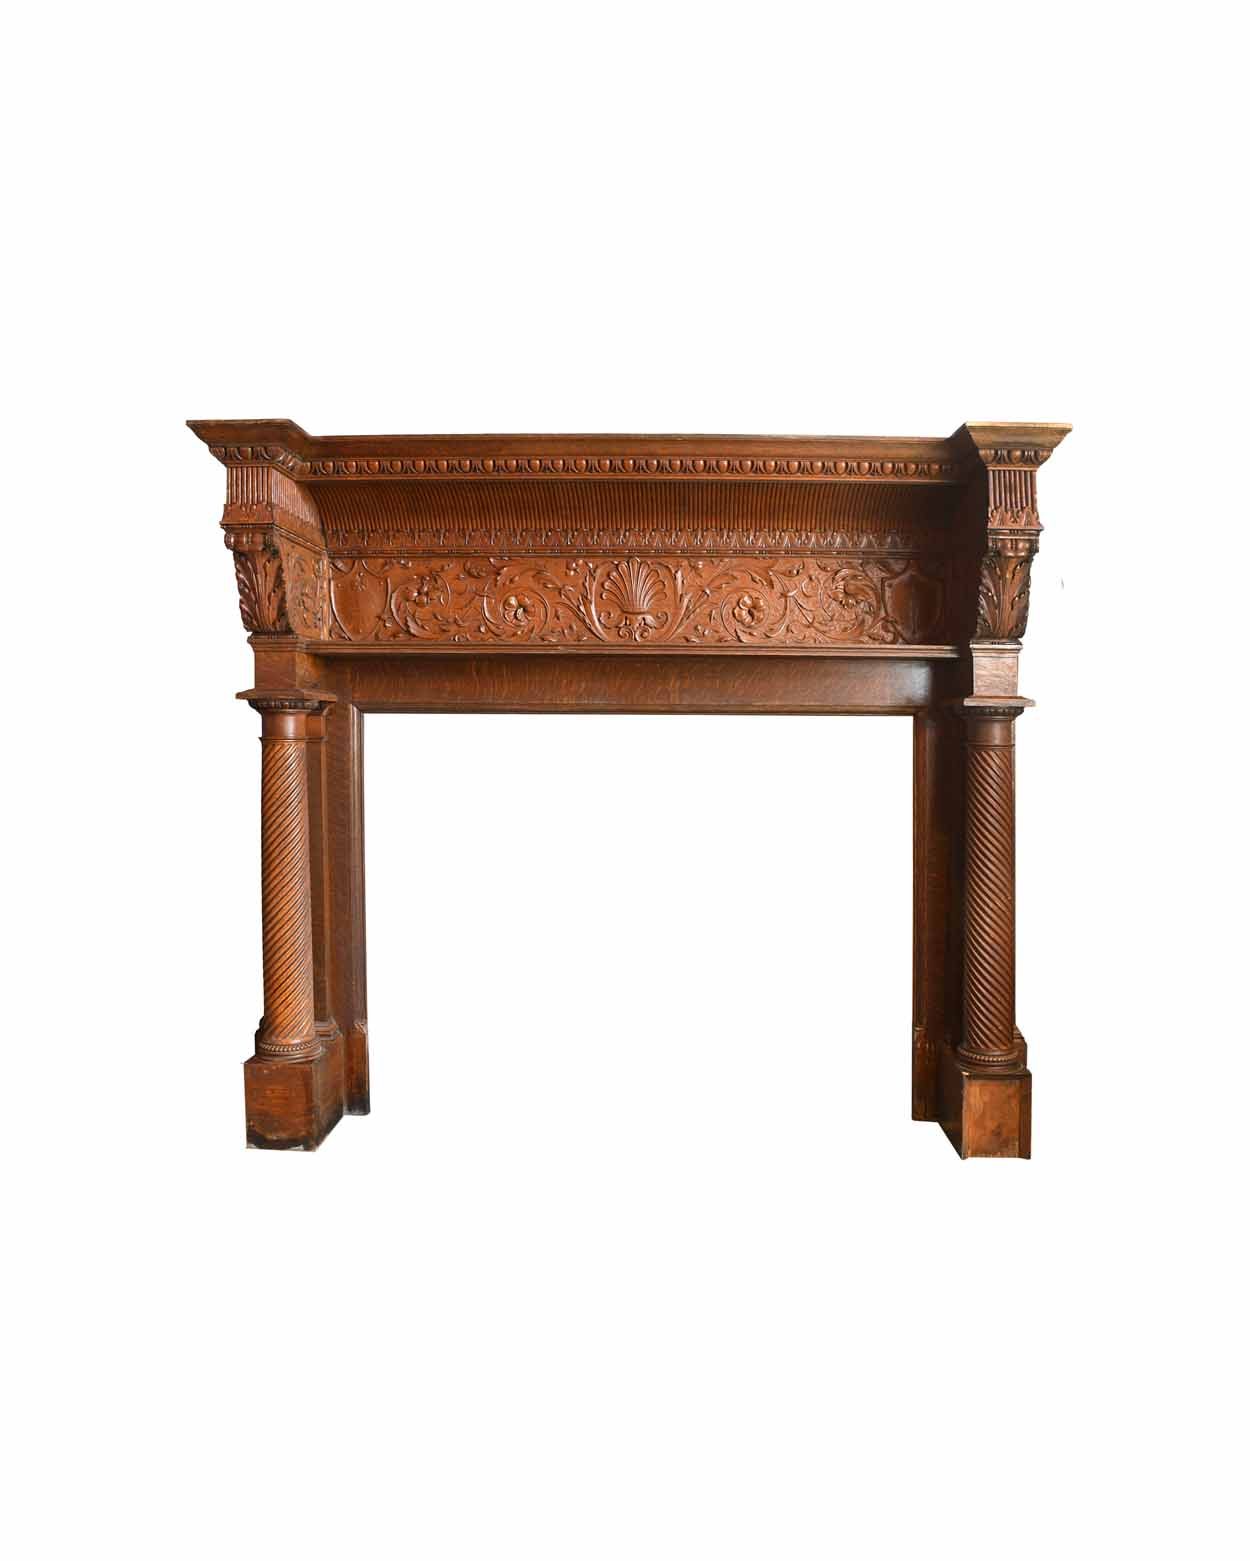 Massive Pittsburgh Oliver House quarter sawn oak Victorian mantel